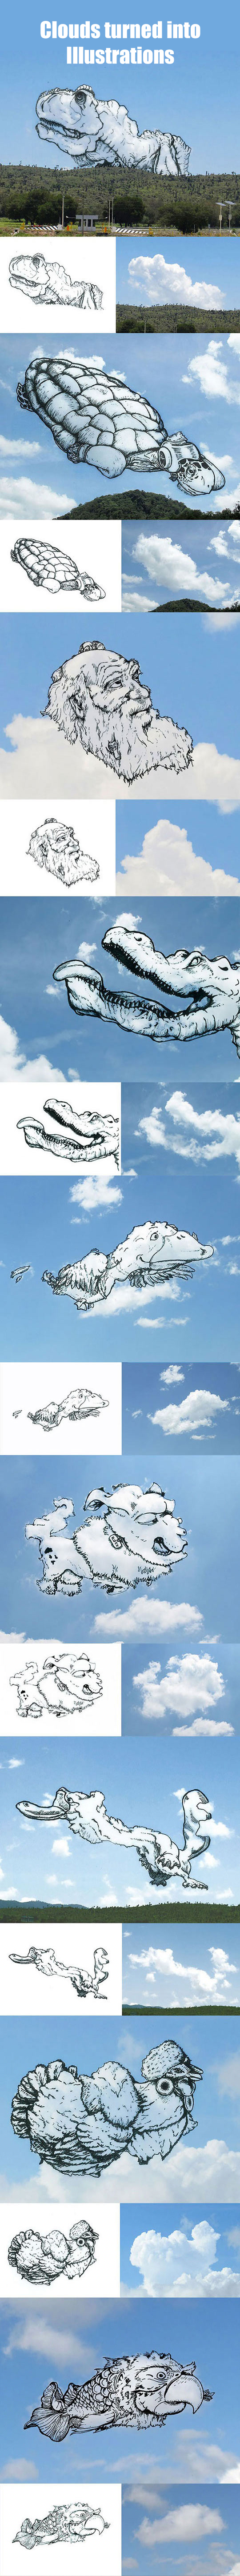 Clouds turned into illustrations